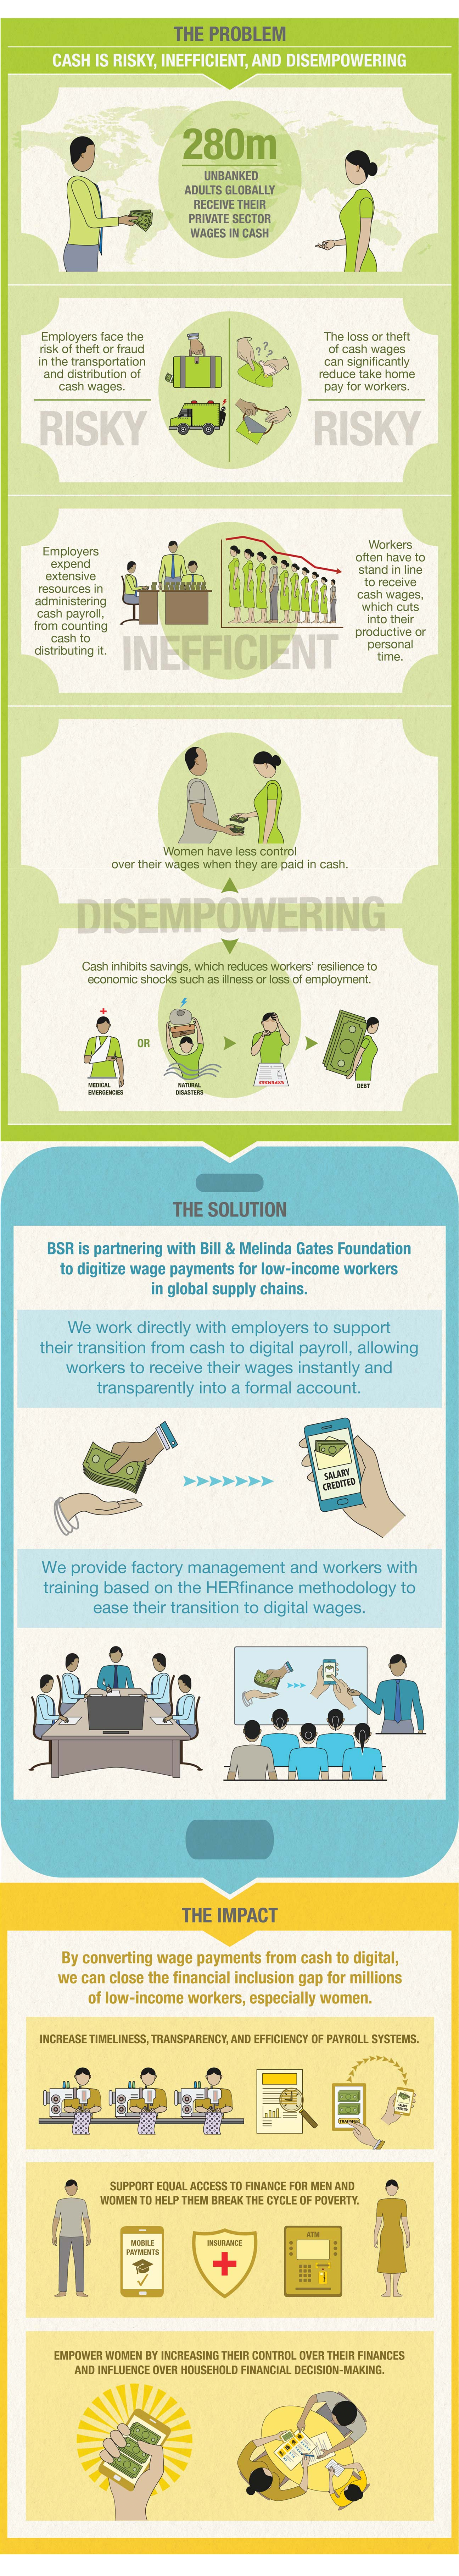 Digital wages infographic